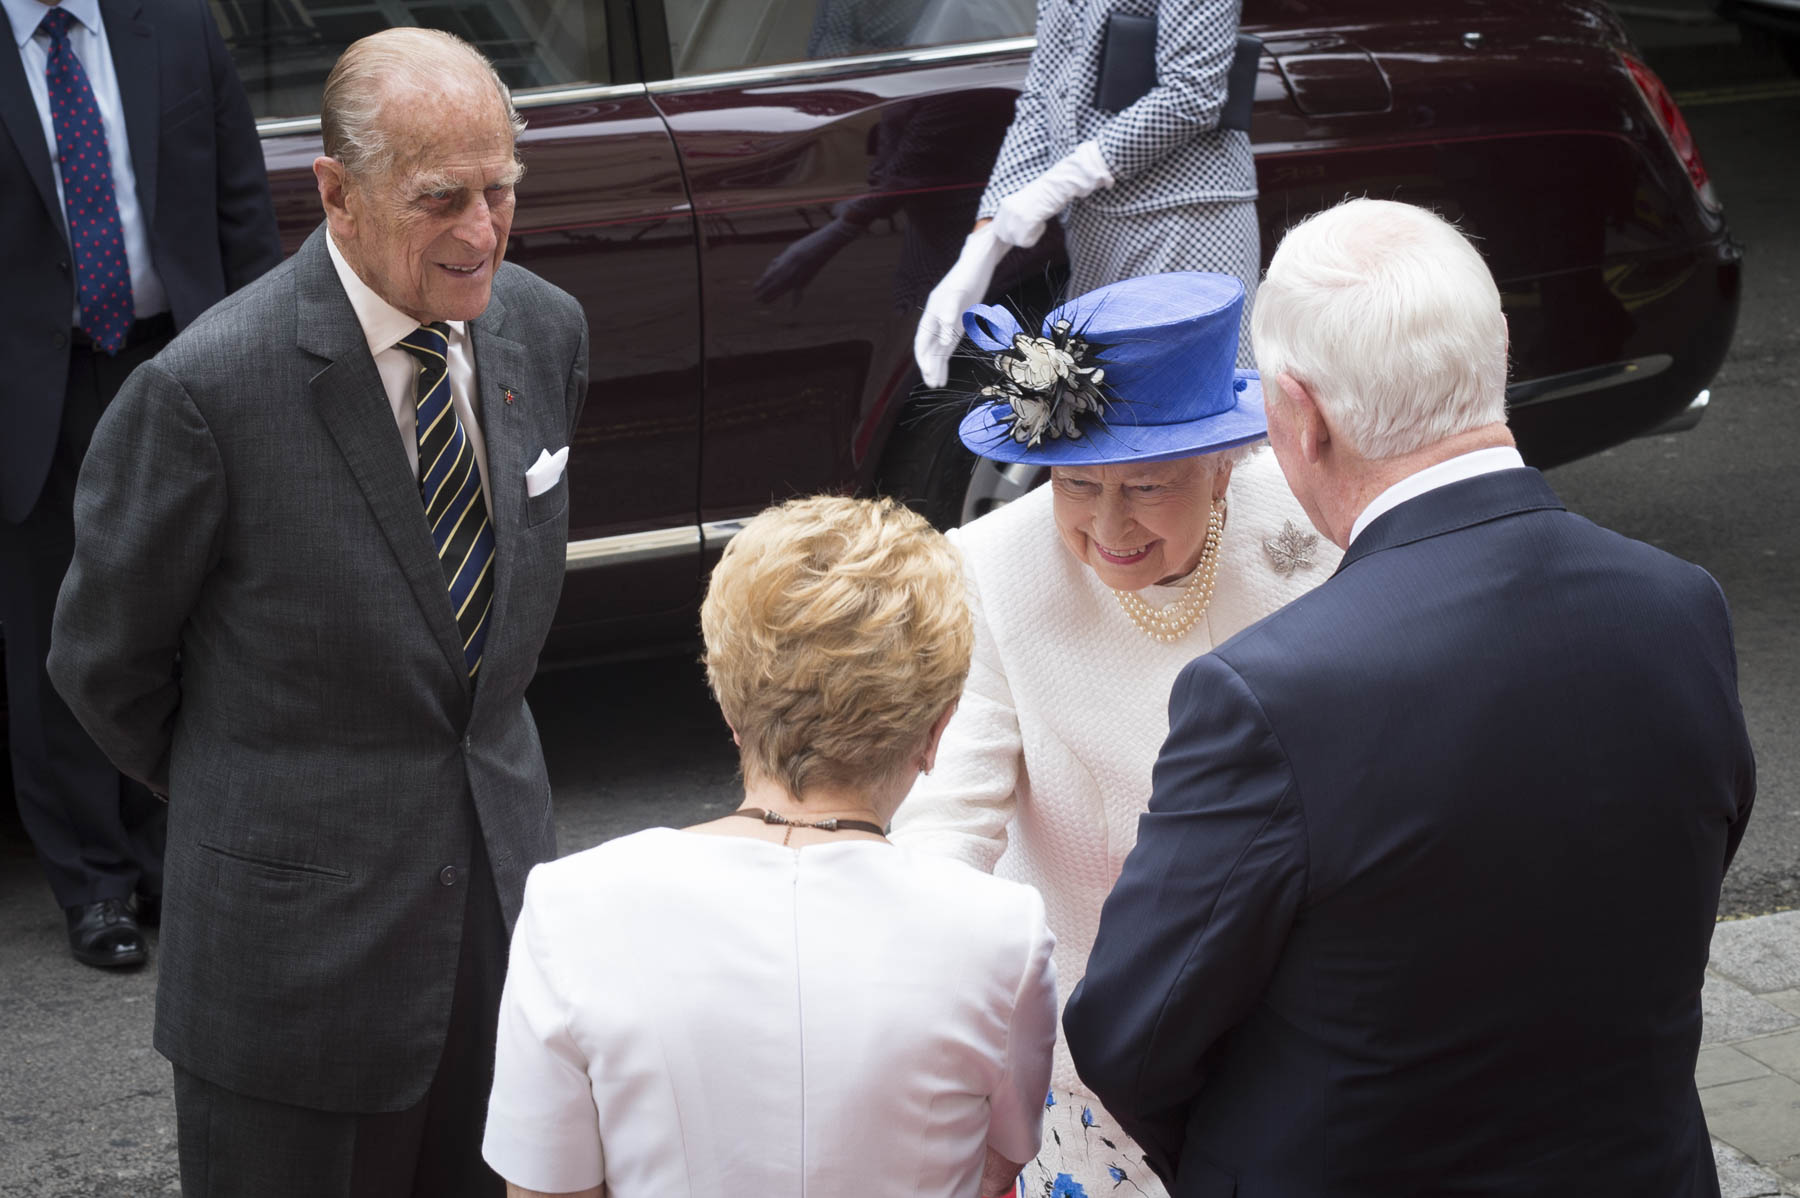 On July 19, 2017, Her Majesty The Queen and His Royal Highness The Duke of Edinburgh joined Their Excellencies at Canada House for a celebration to mark the 150th anniversary of Confederation.